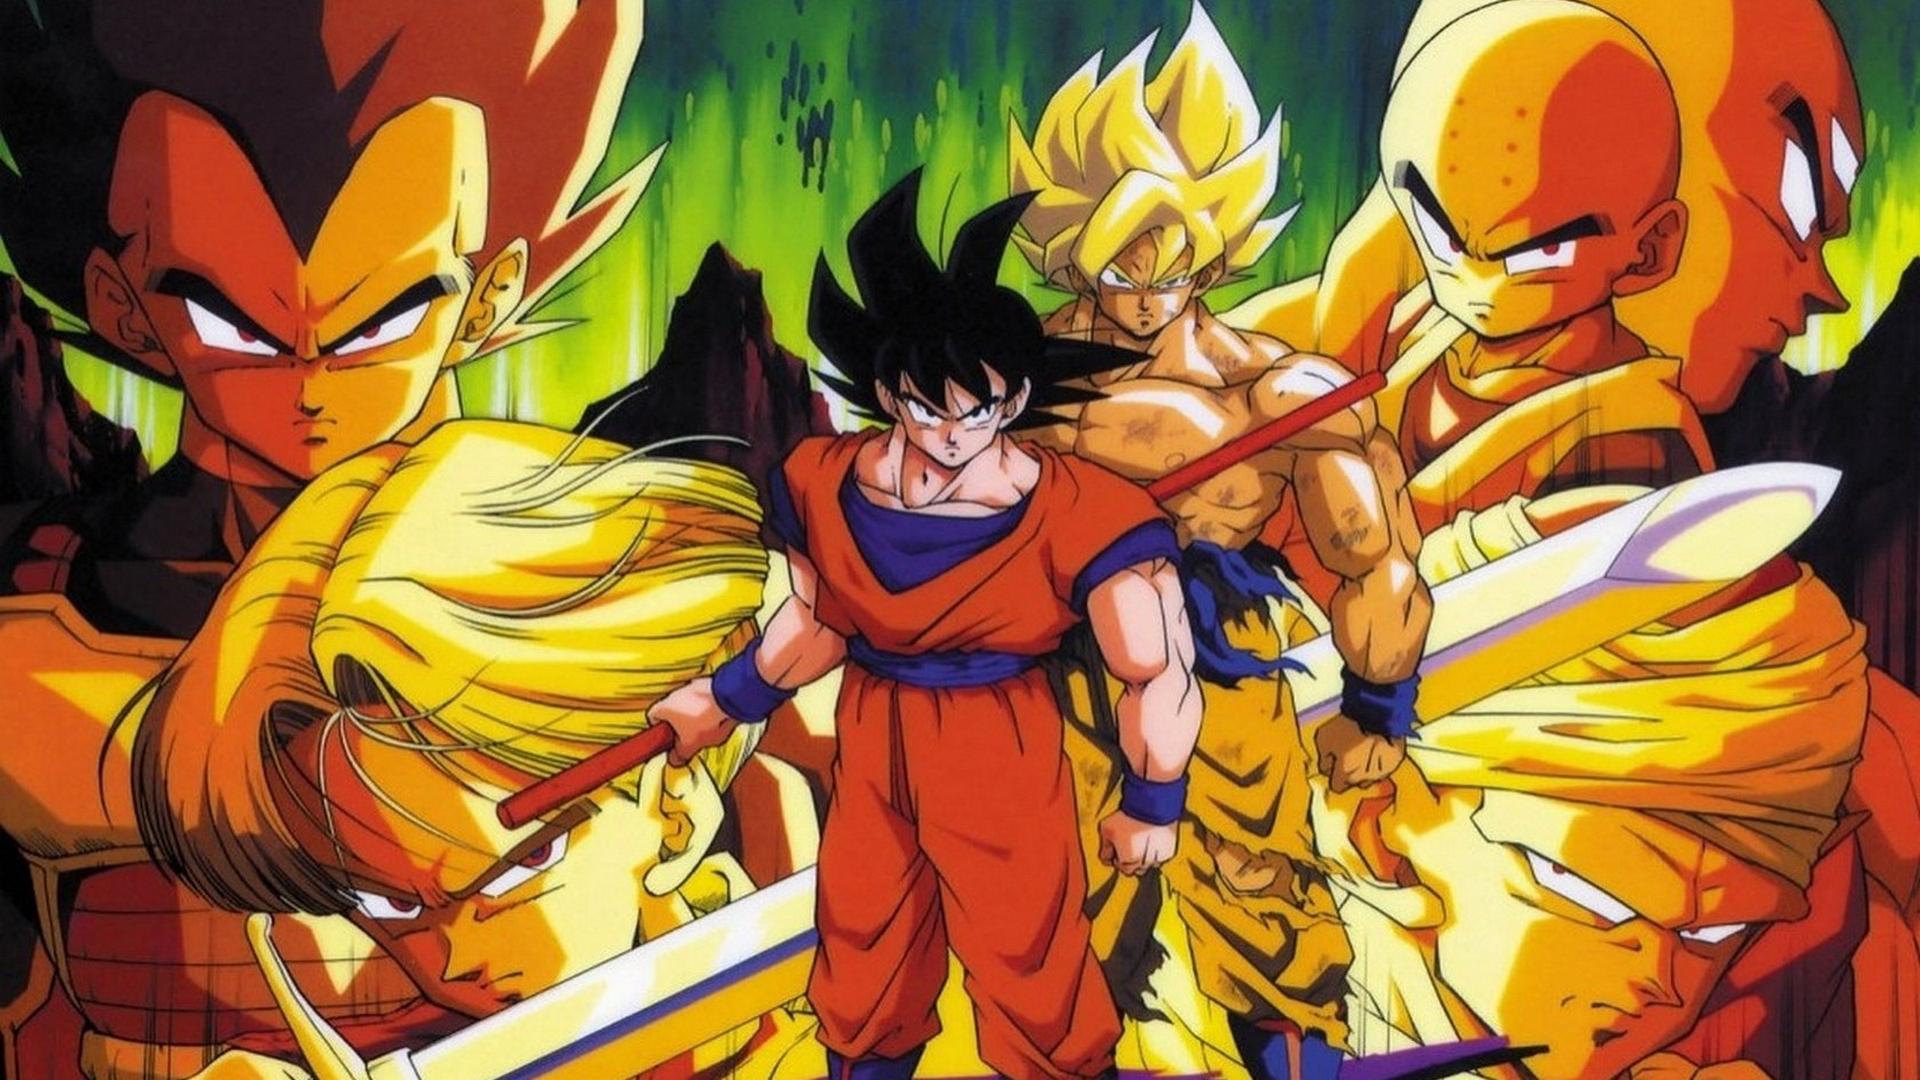 Free Download Dragonball Z Wallpapers Hd 1080p Pictures Photos